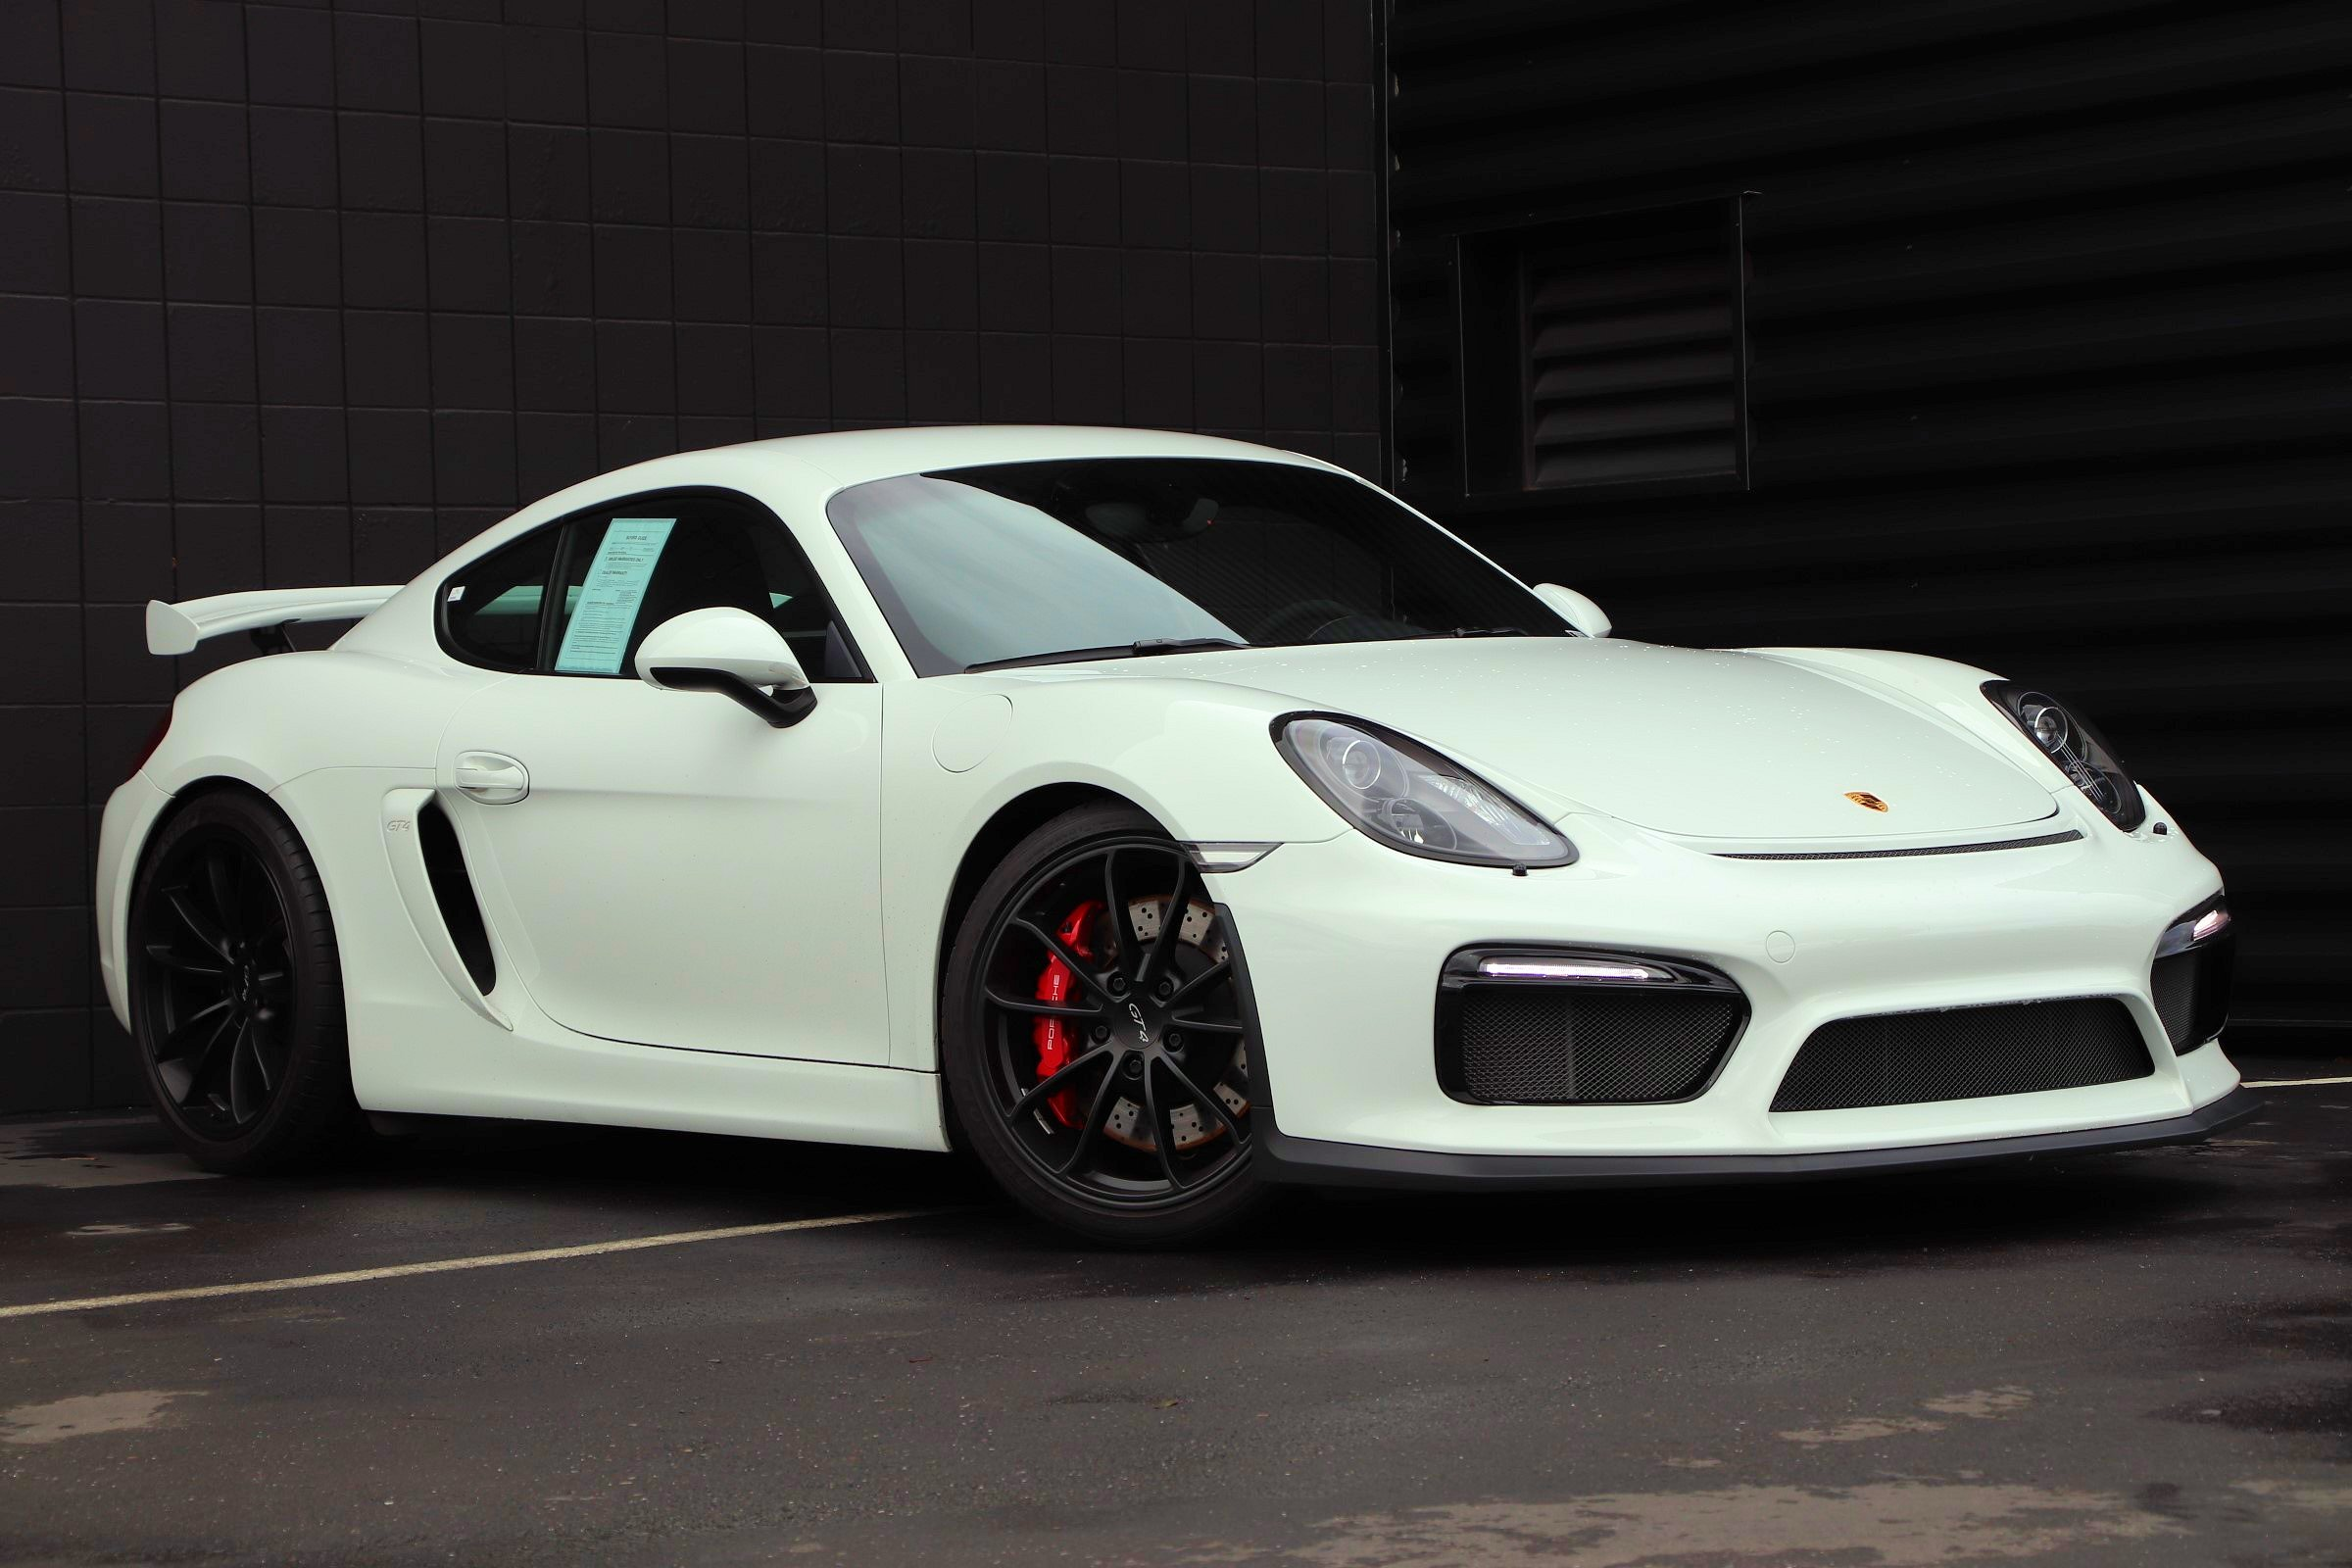 certified pre-owned 2016 porsche cayman gt4 coupe in fremont #p8920